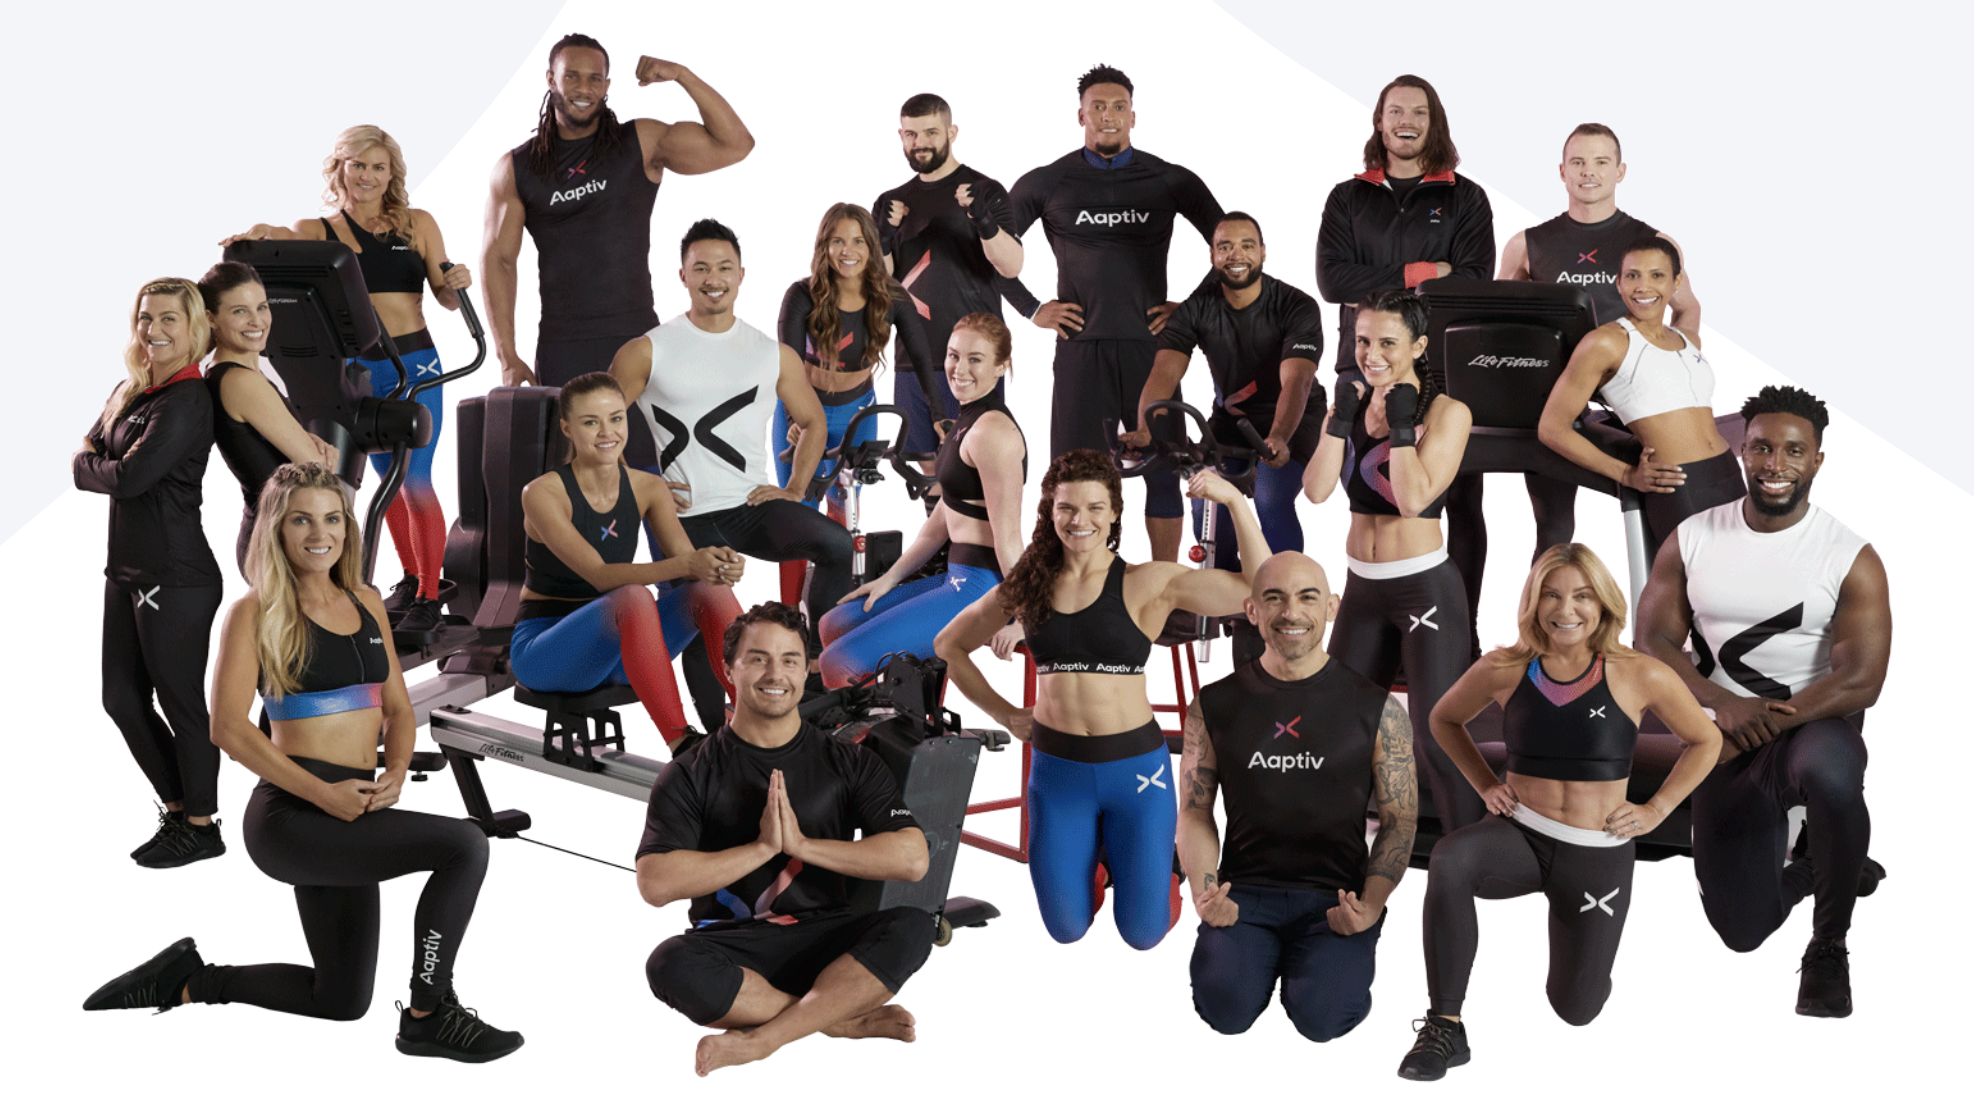 """Aaptiv raises $22M from Amazon, Disney and more for its """"Netflix for fitness"""", now valued over $200M"""